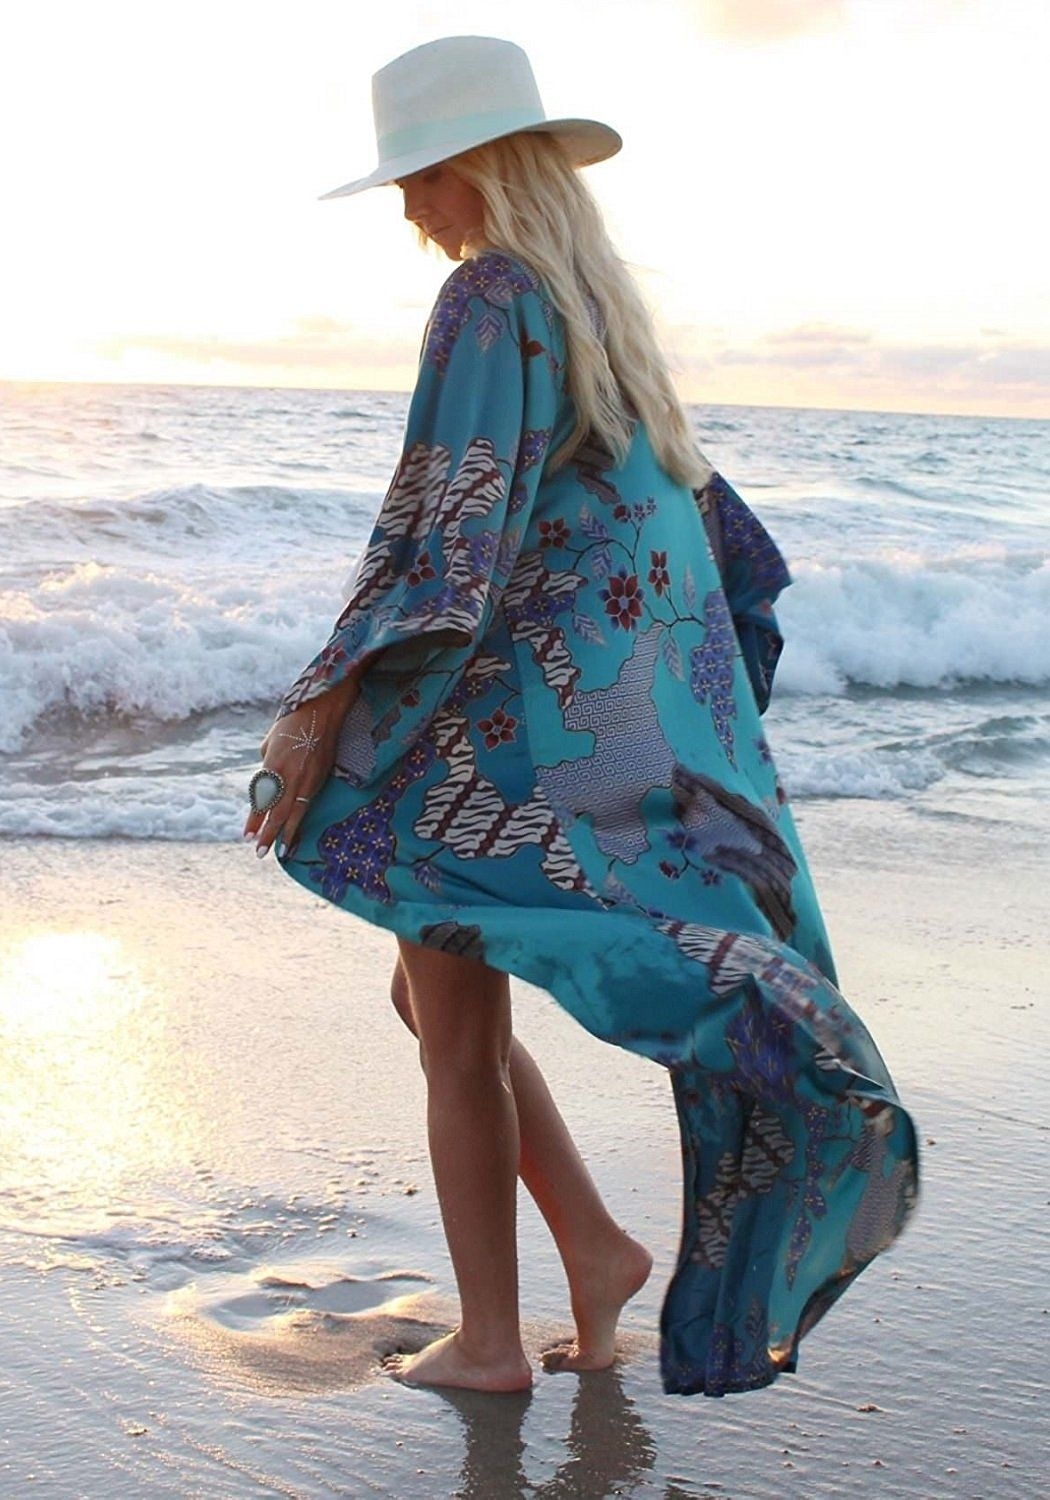 ab6d404f1afd3 Floral Season Women Casual Loose Chiffon Long Kimono Cardigan Cover up  Outwear at Amazon Women's Clothing